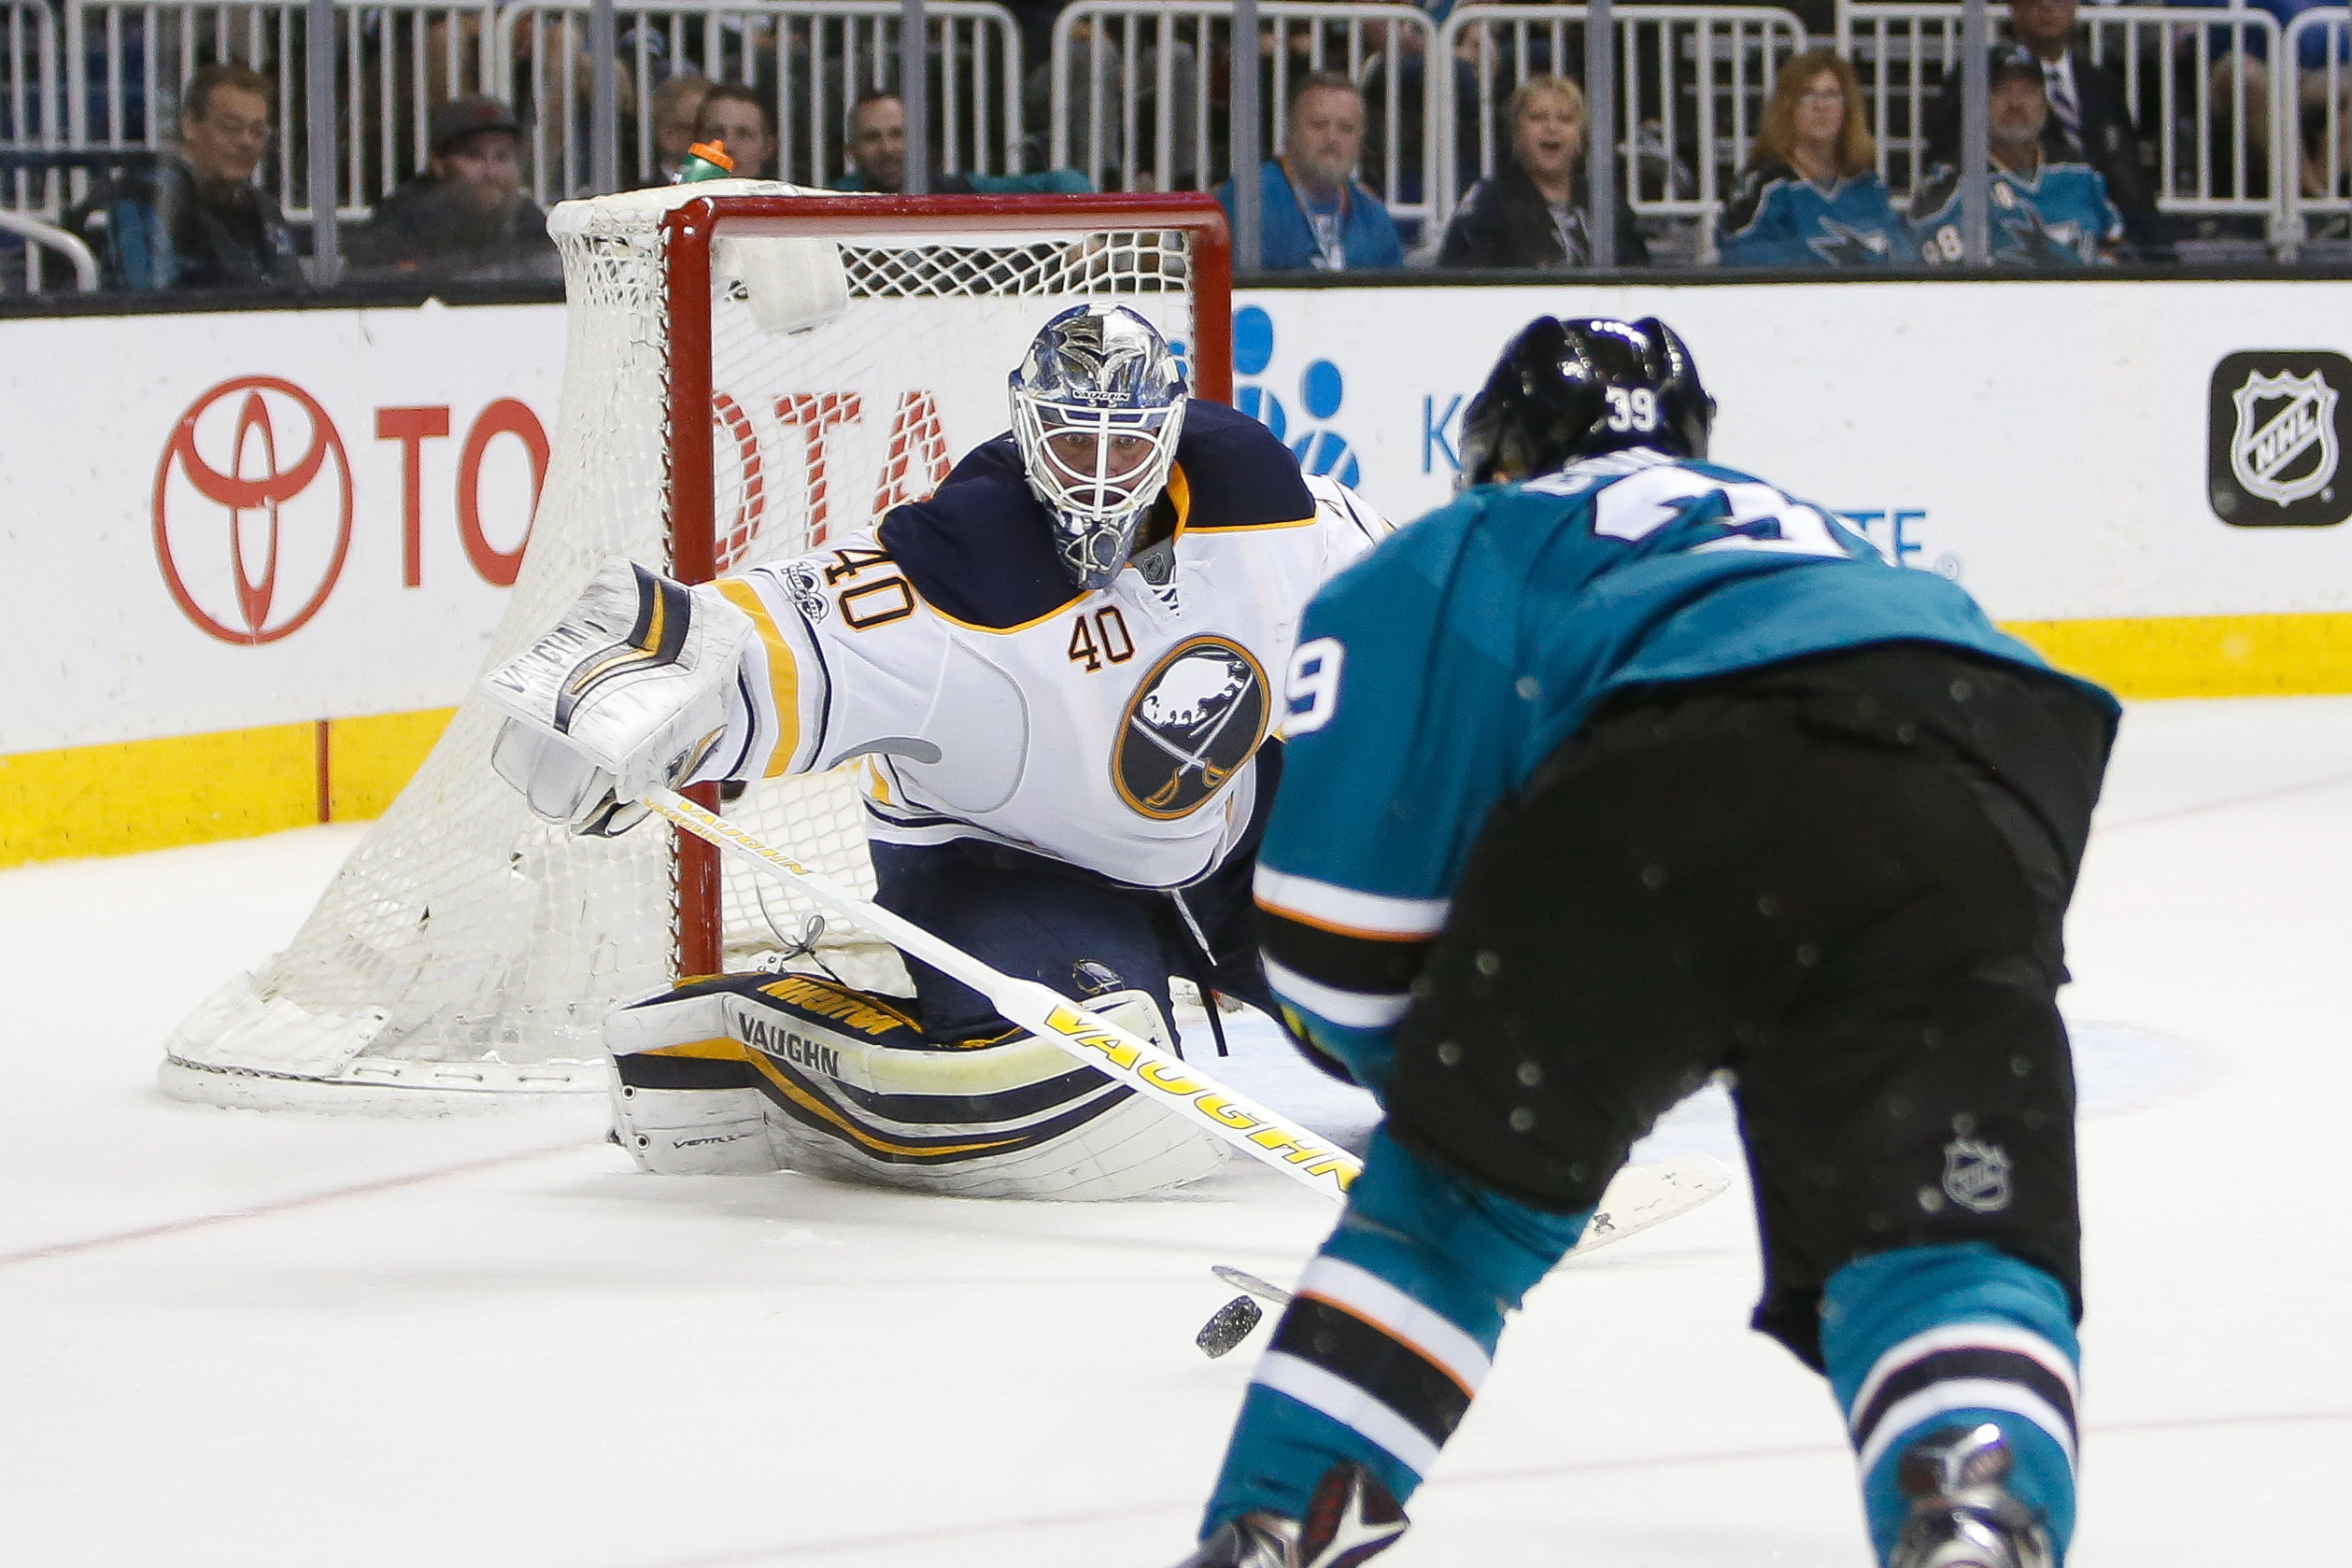 Logan Couture prepares to chip the puck over Robin Lehner for the Sharks' fourth goal (USA Today Sports).